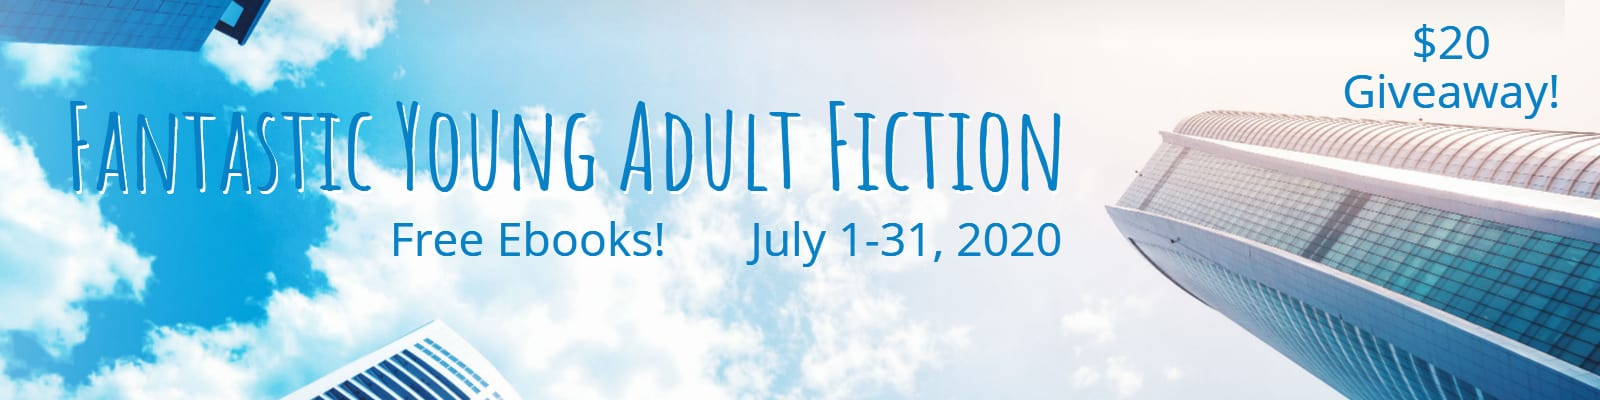 Fantastic Young Adult Fiction